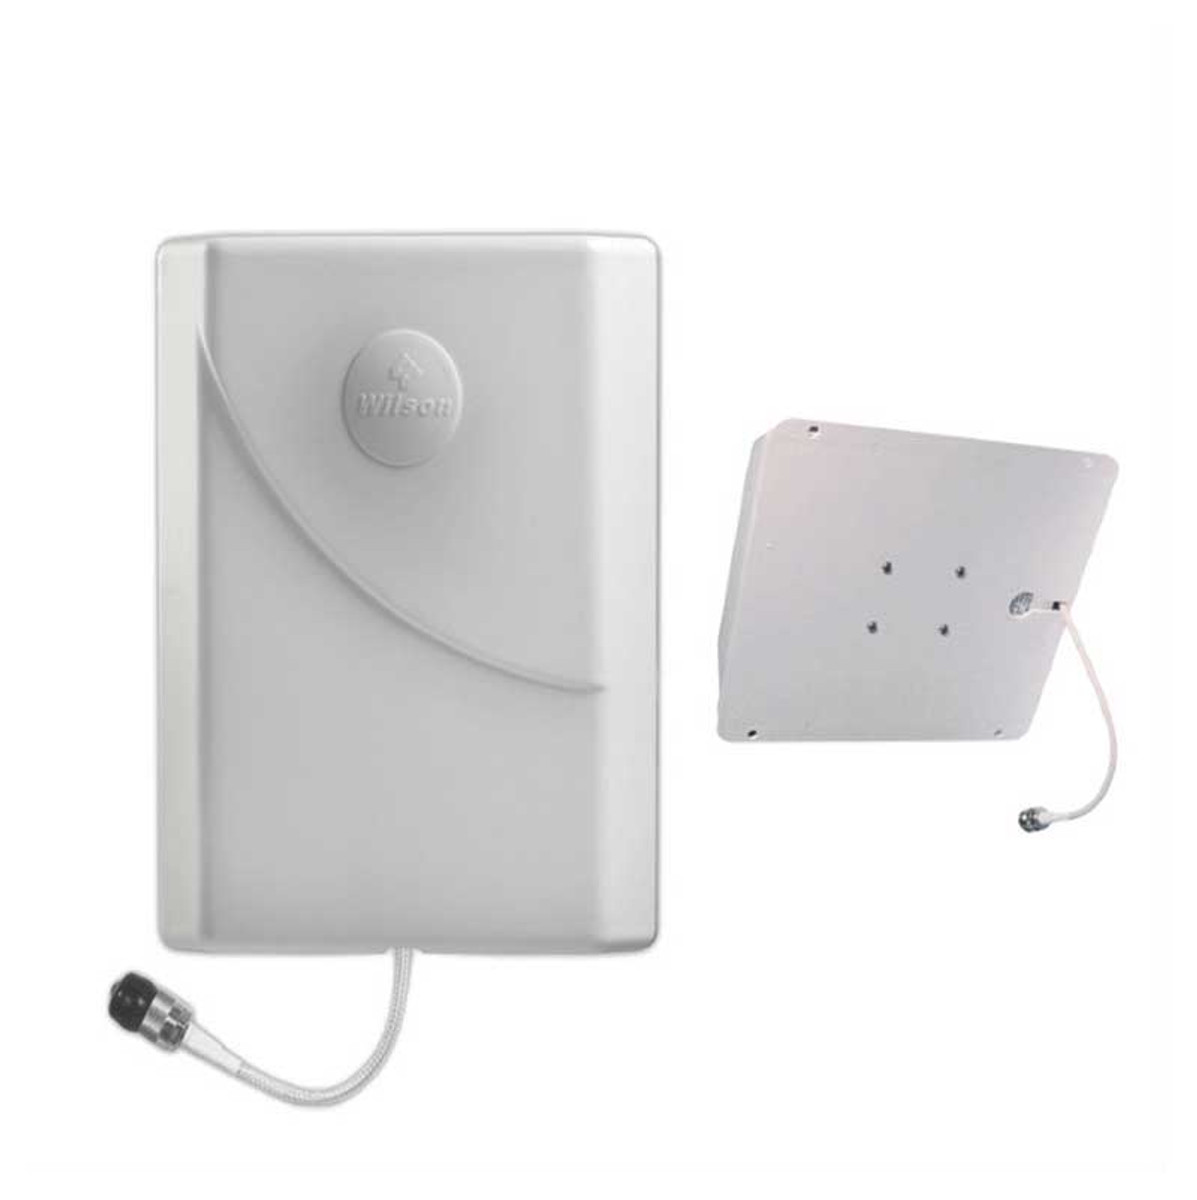 Wilson 304451 Ceiling Mount Panel Antenna 700-2700 MHz 50 Ohms Multi Band, main image